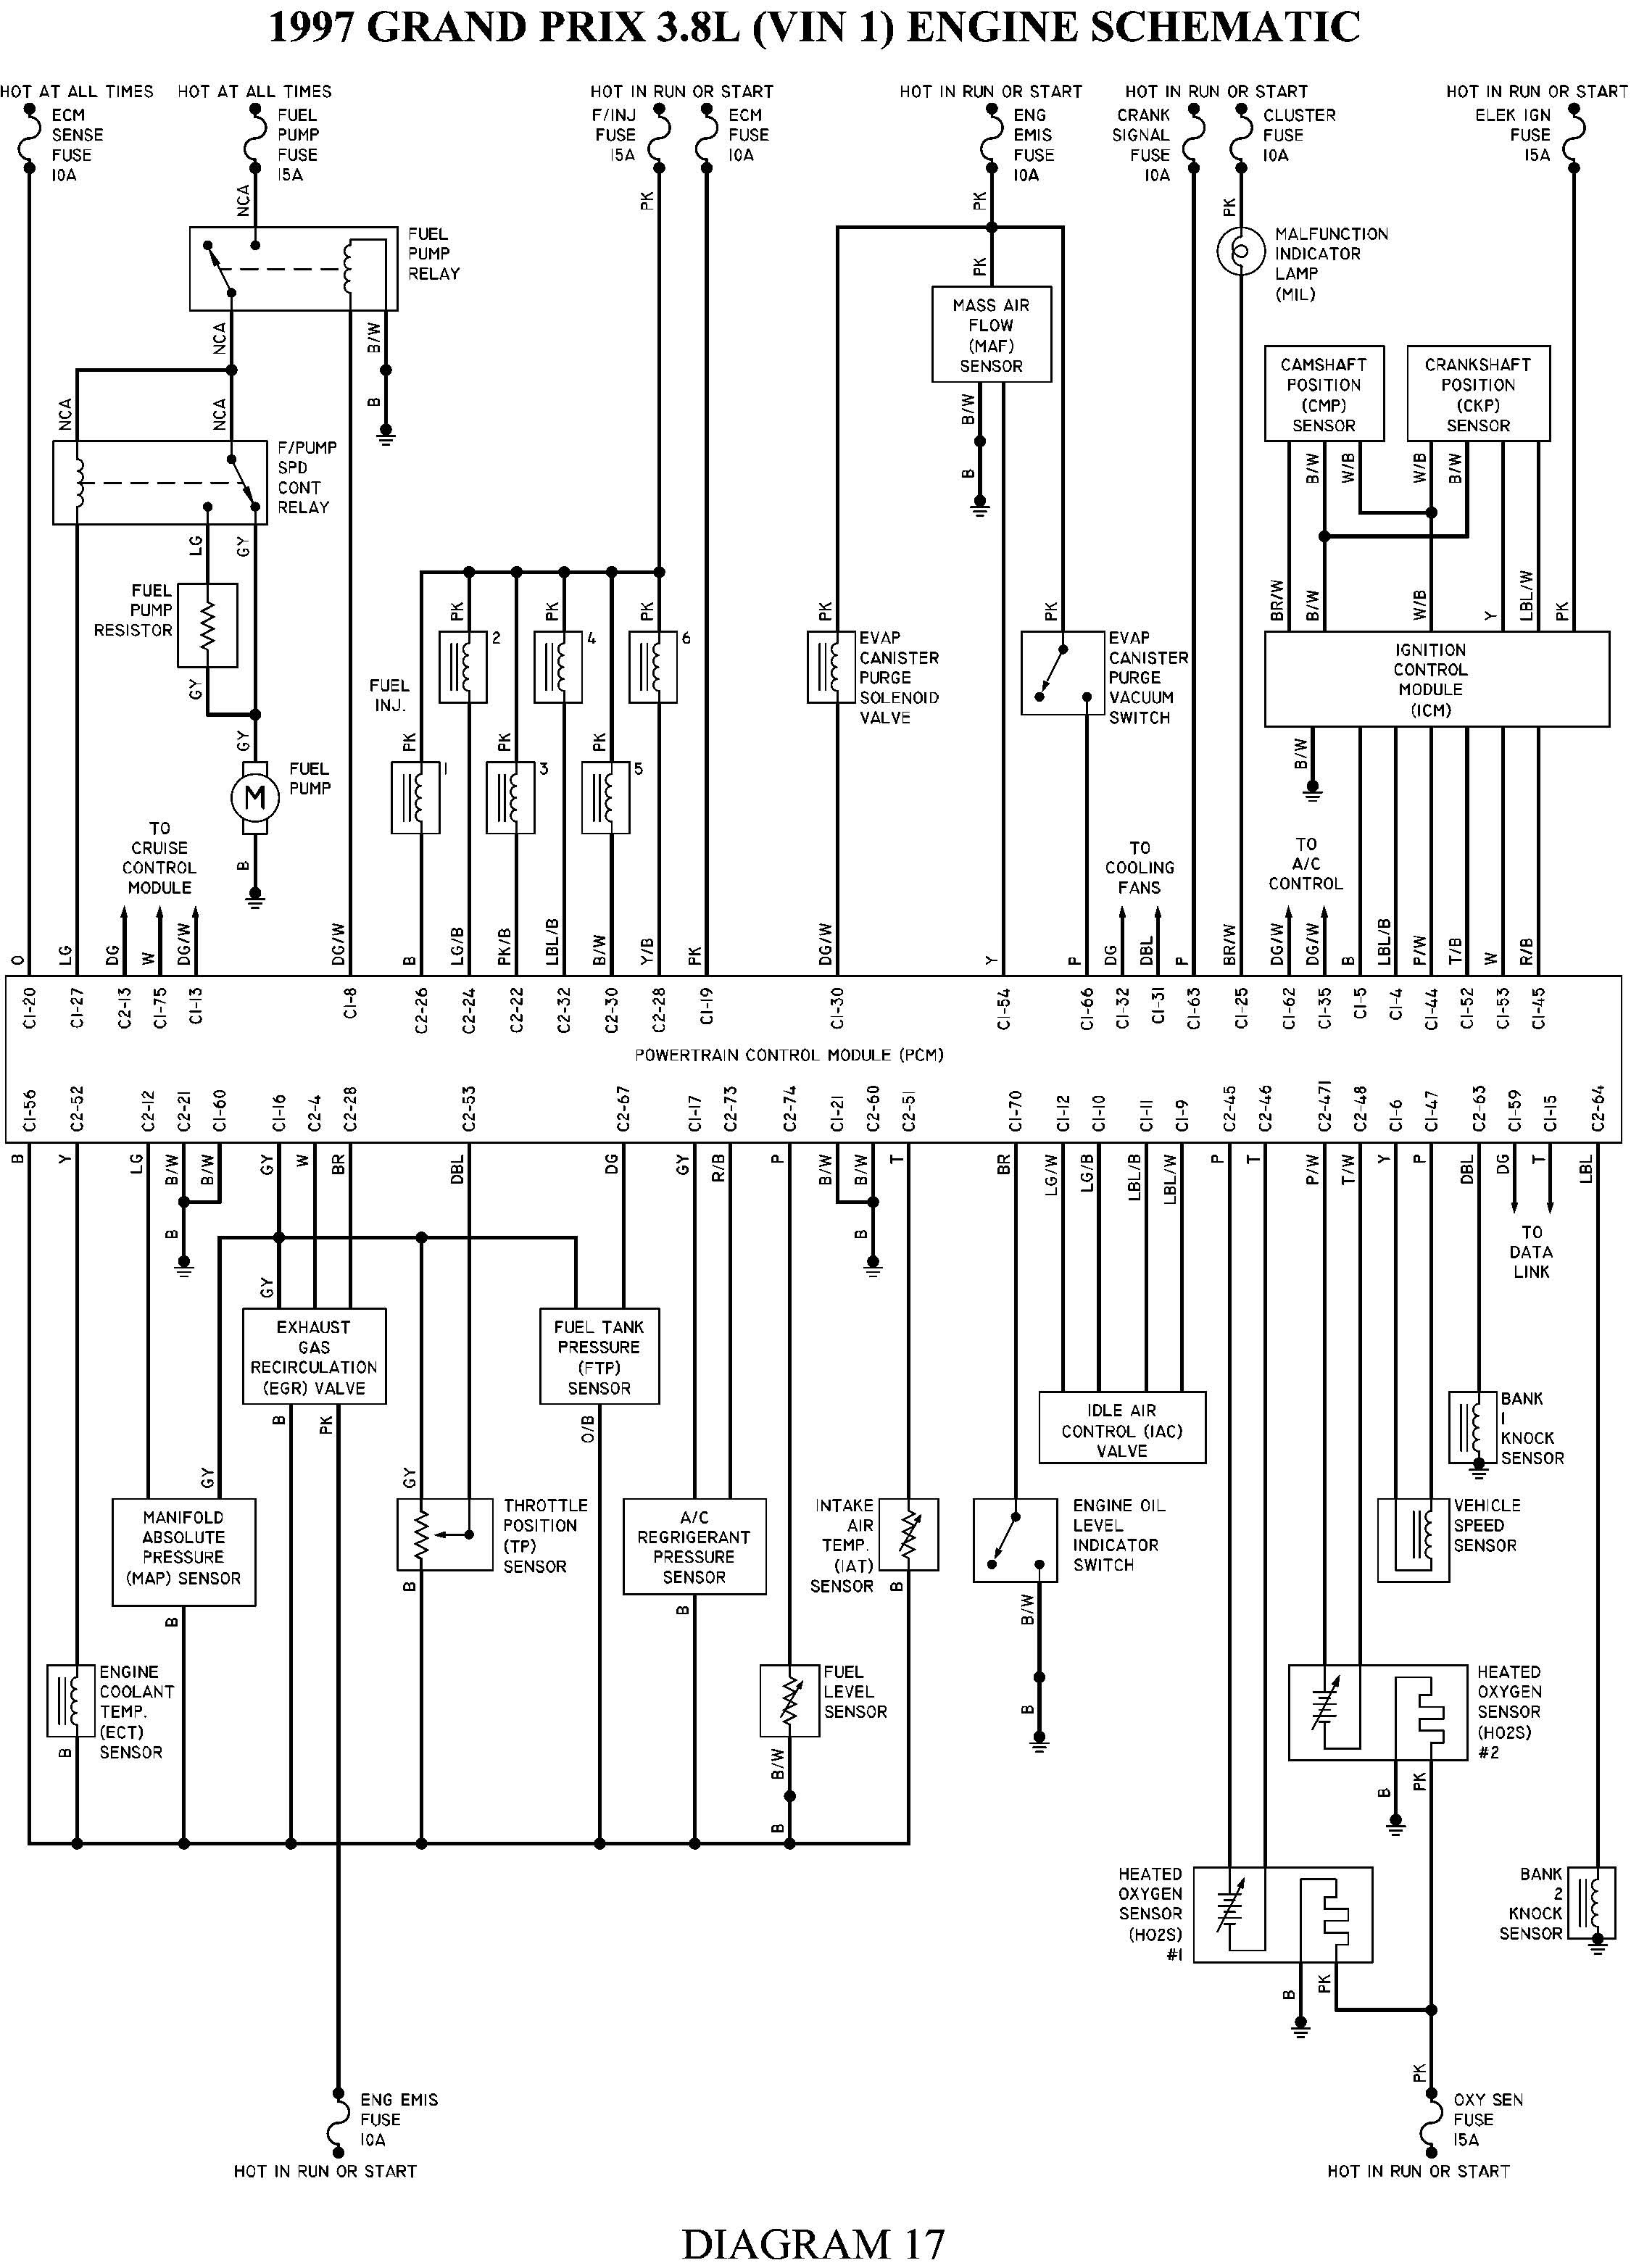 Wiring Diagram 1997 Pontiac Grand Am - Wiring Diagram